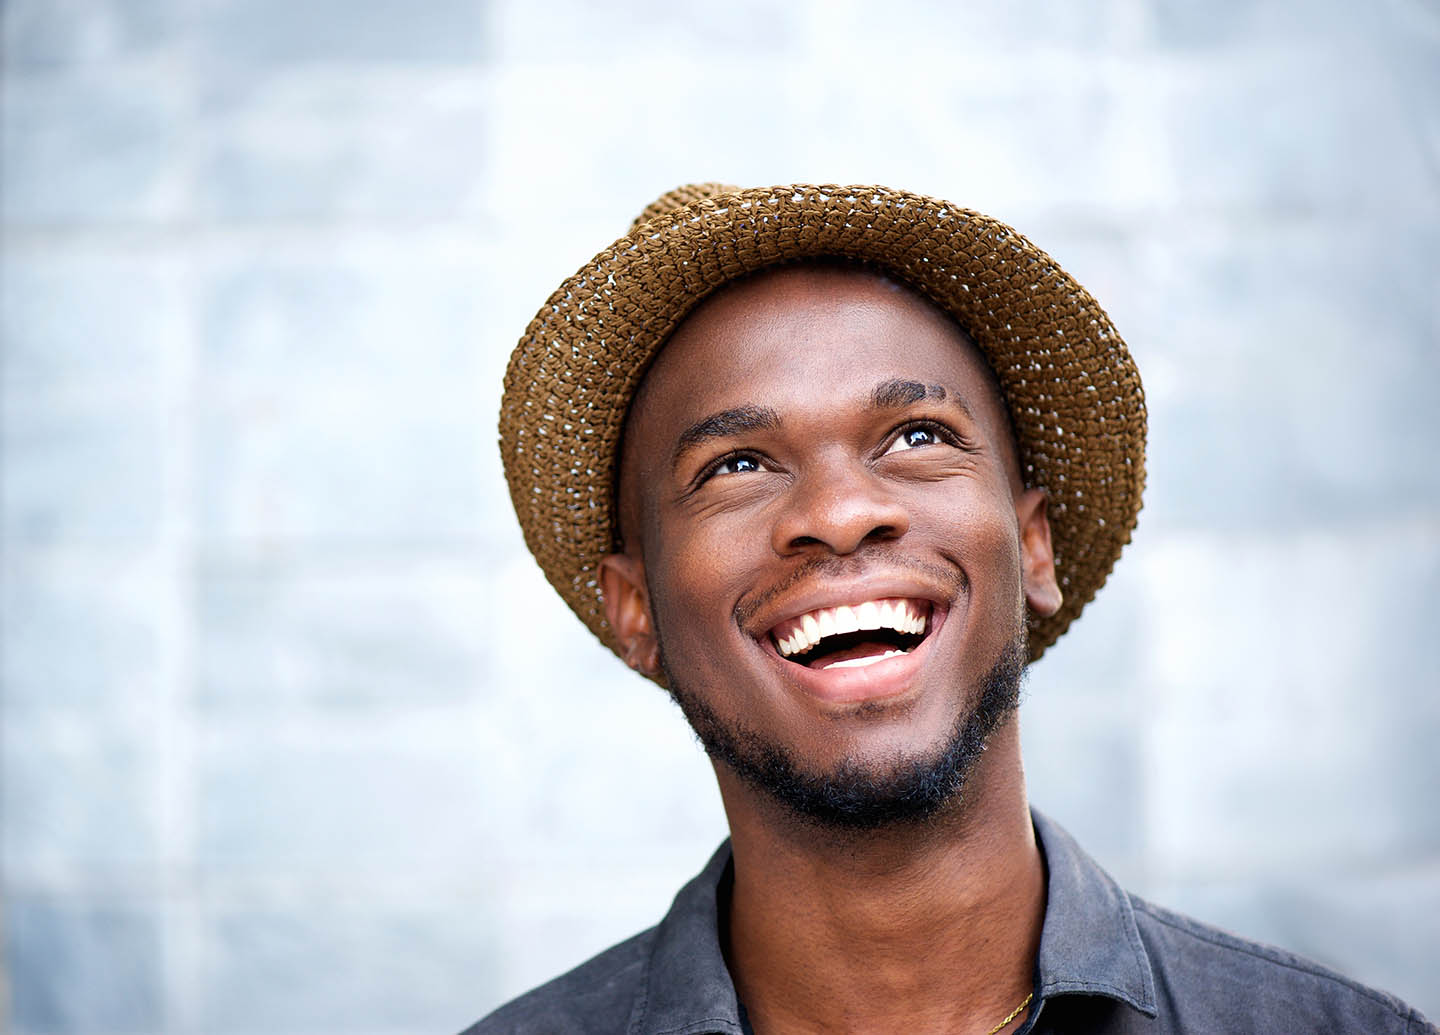 man smiling looking up in hat